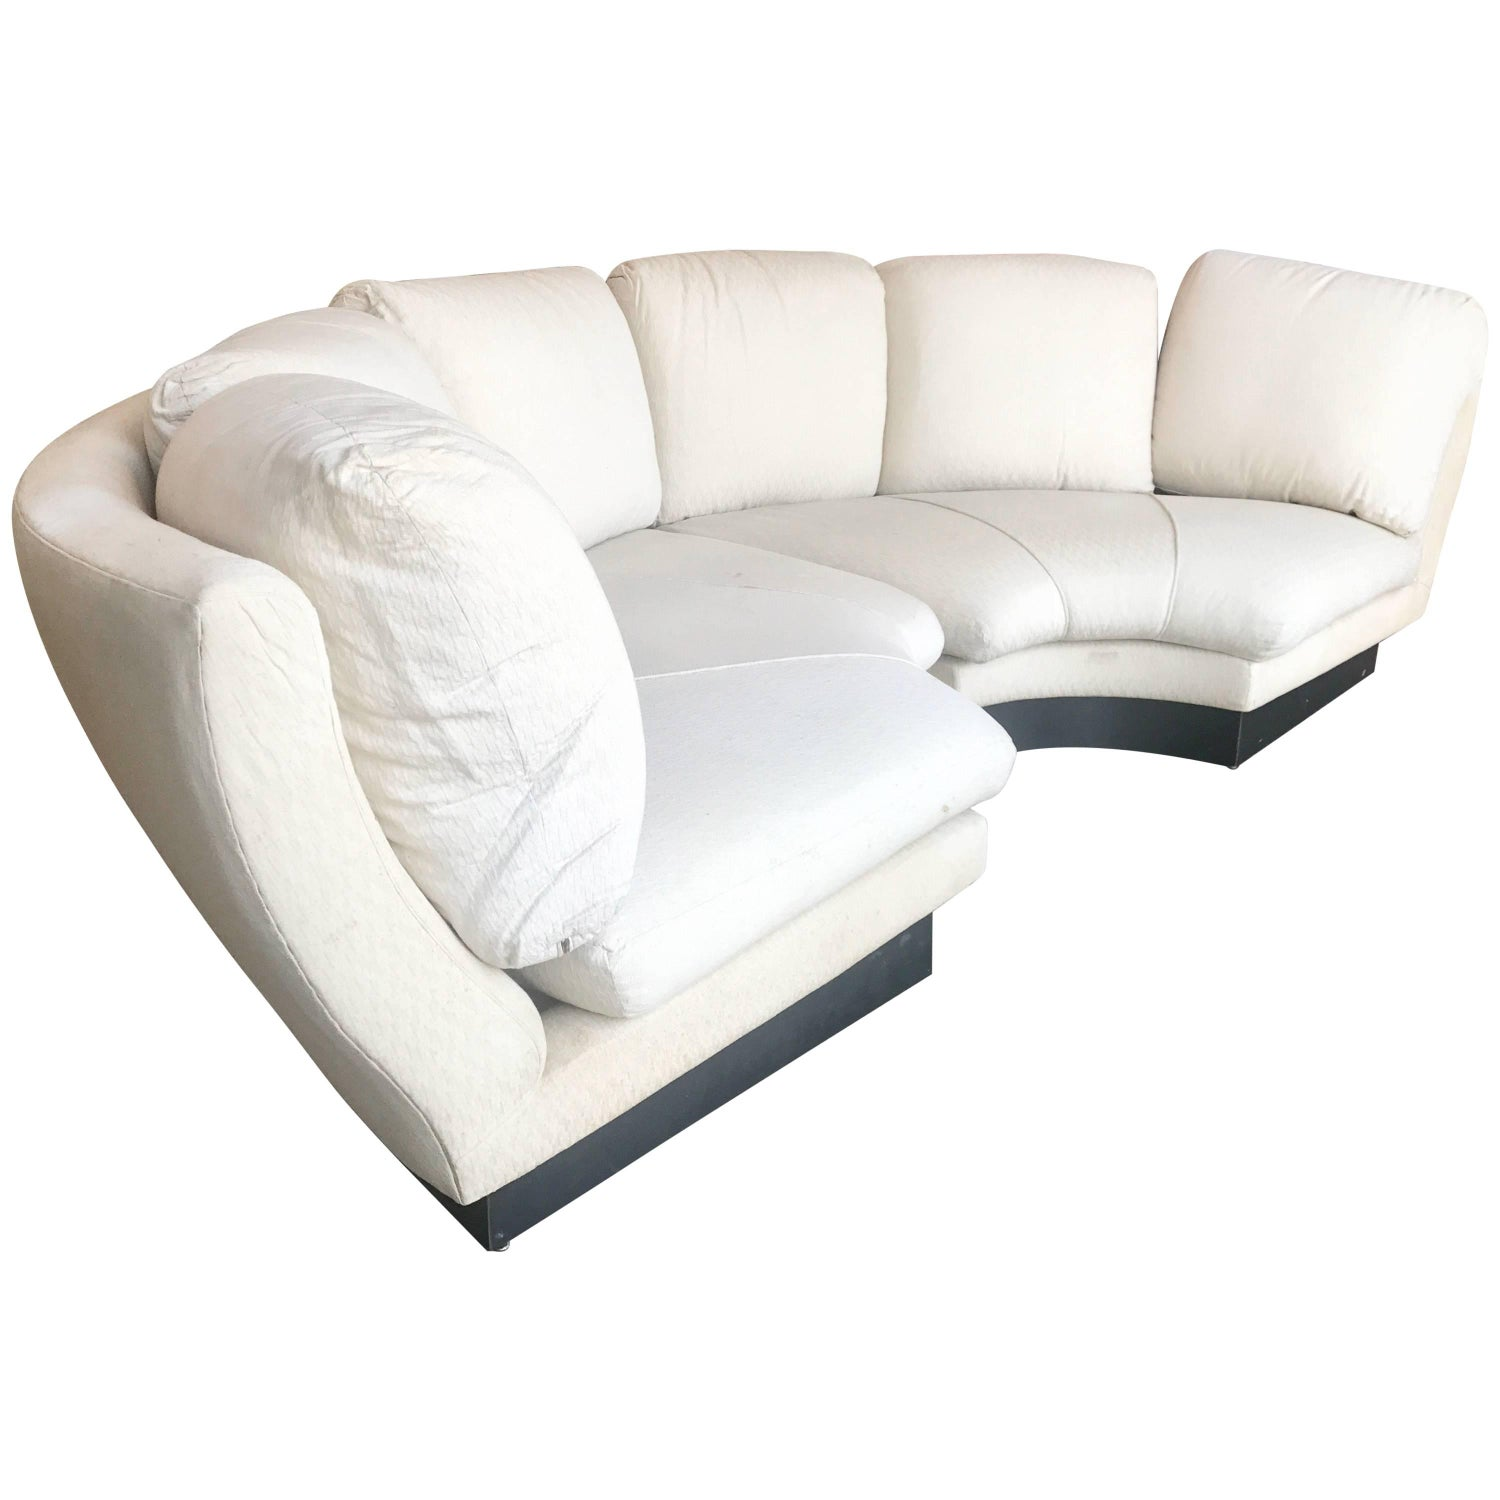 with sofa ideas at decorate sectional plough for cadsden the white curved